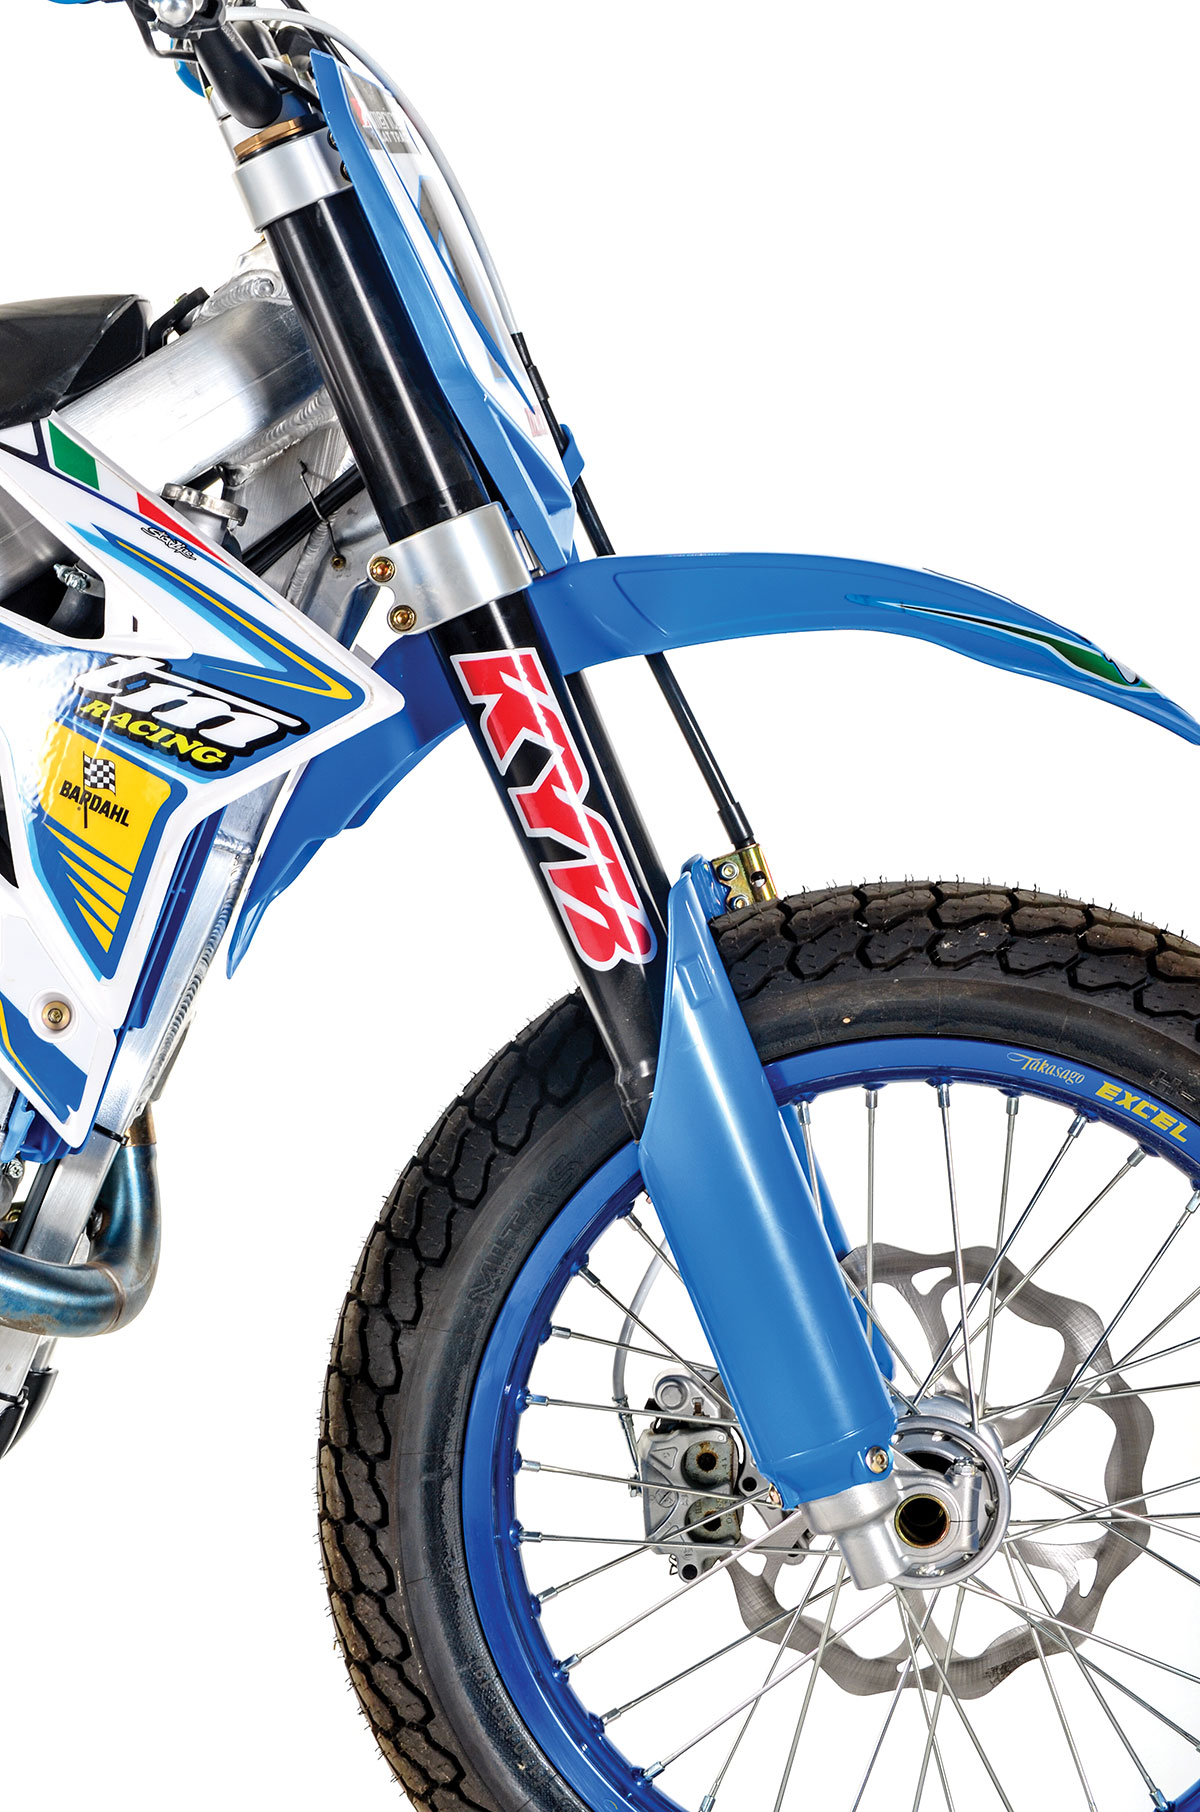 TM 450FI FLAT TRACK | Dirt Bike Magazine